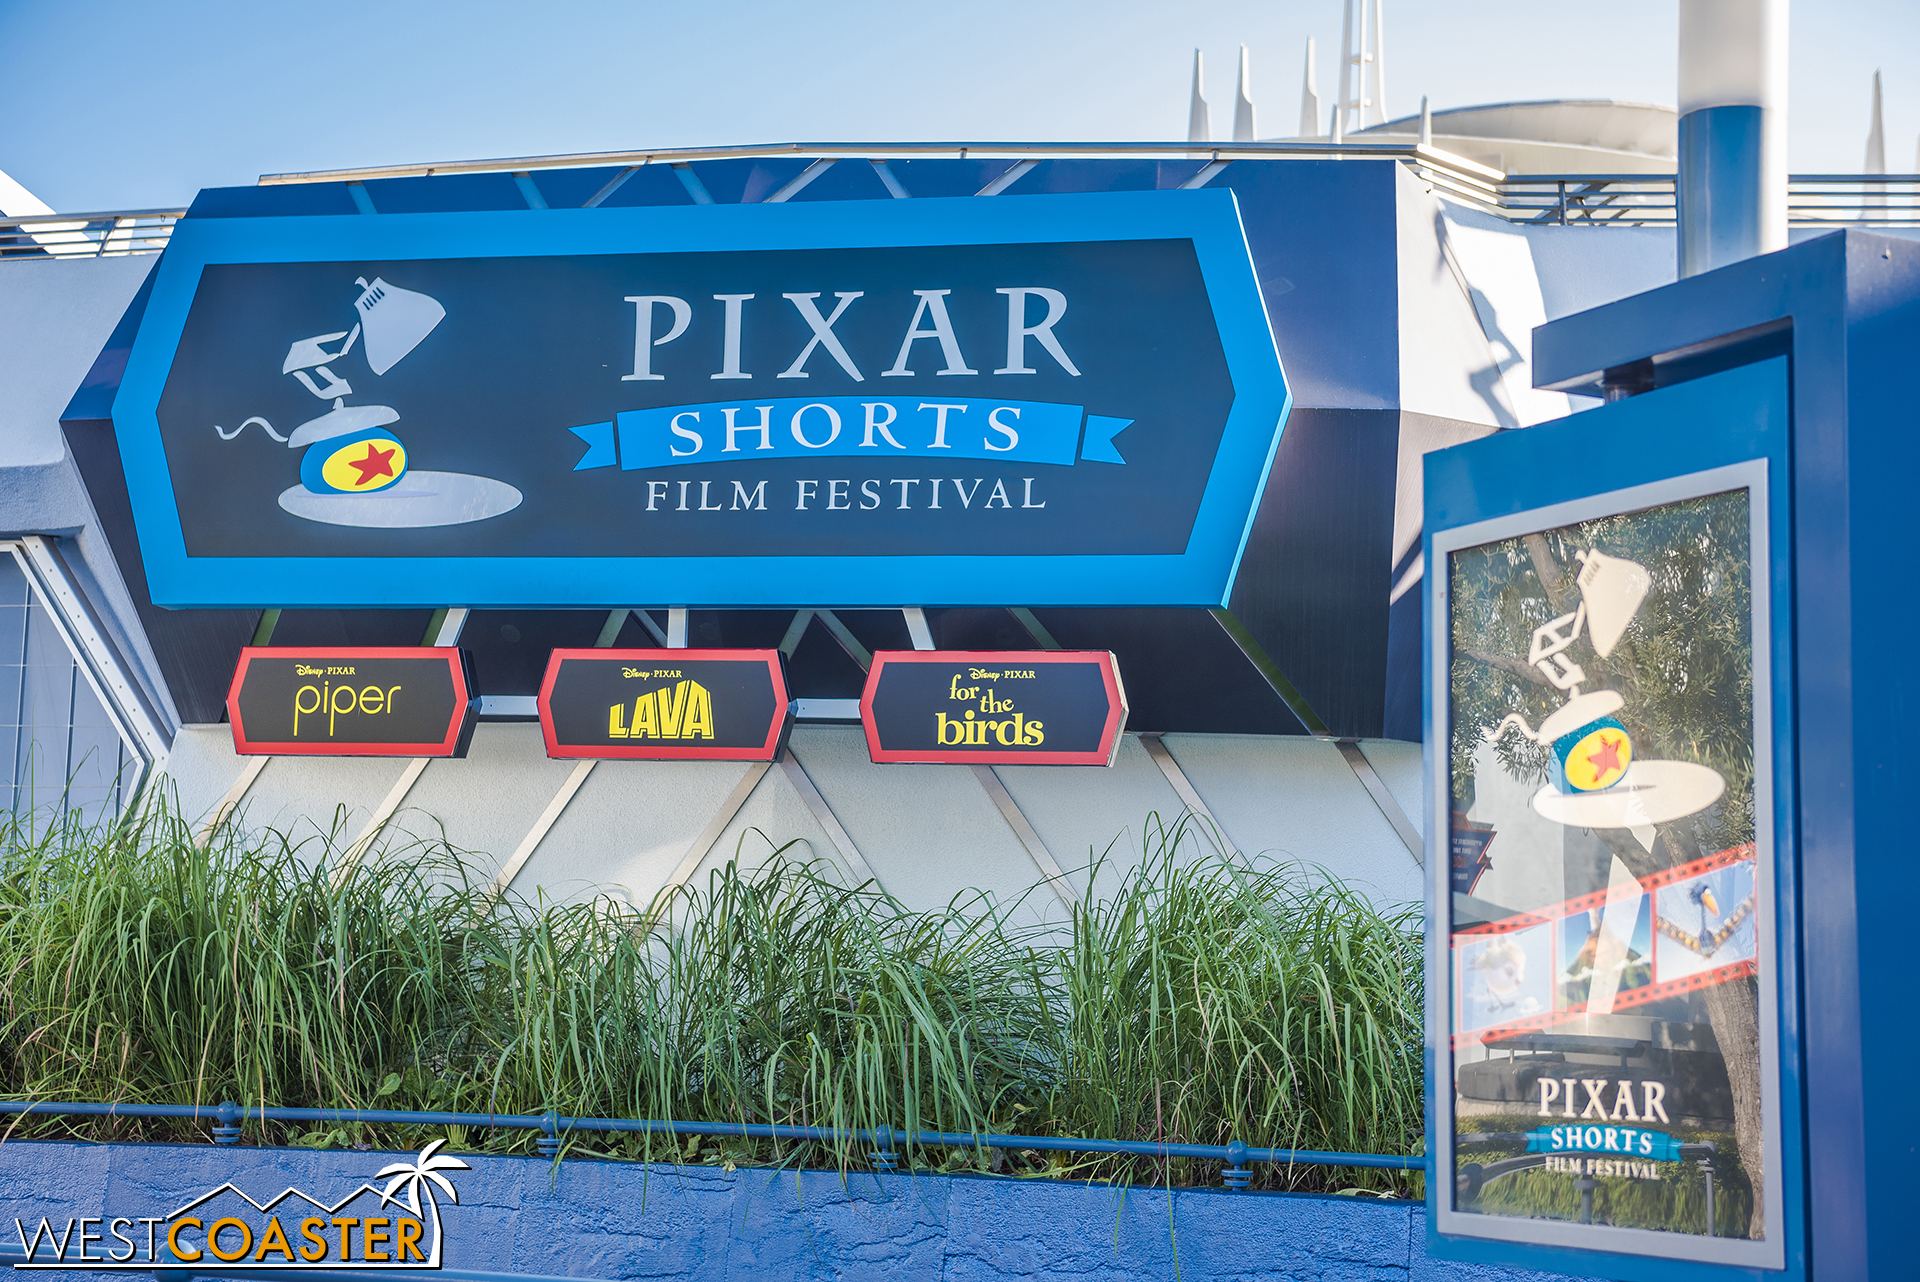 By the way, if you missed these three Pixar shorts when they were in the old Muppetvision theater, you can catch them at in Tomorrowland.